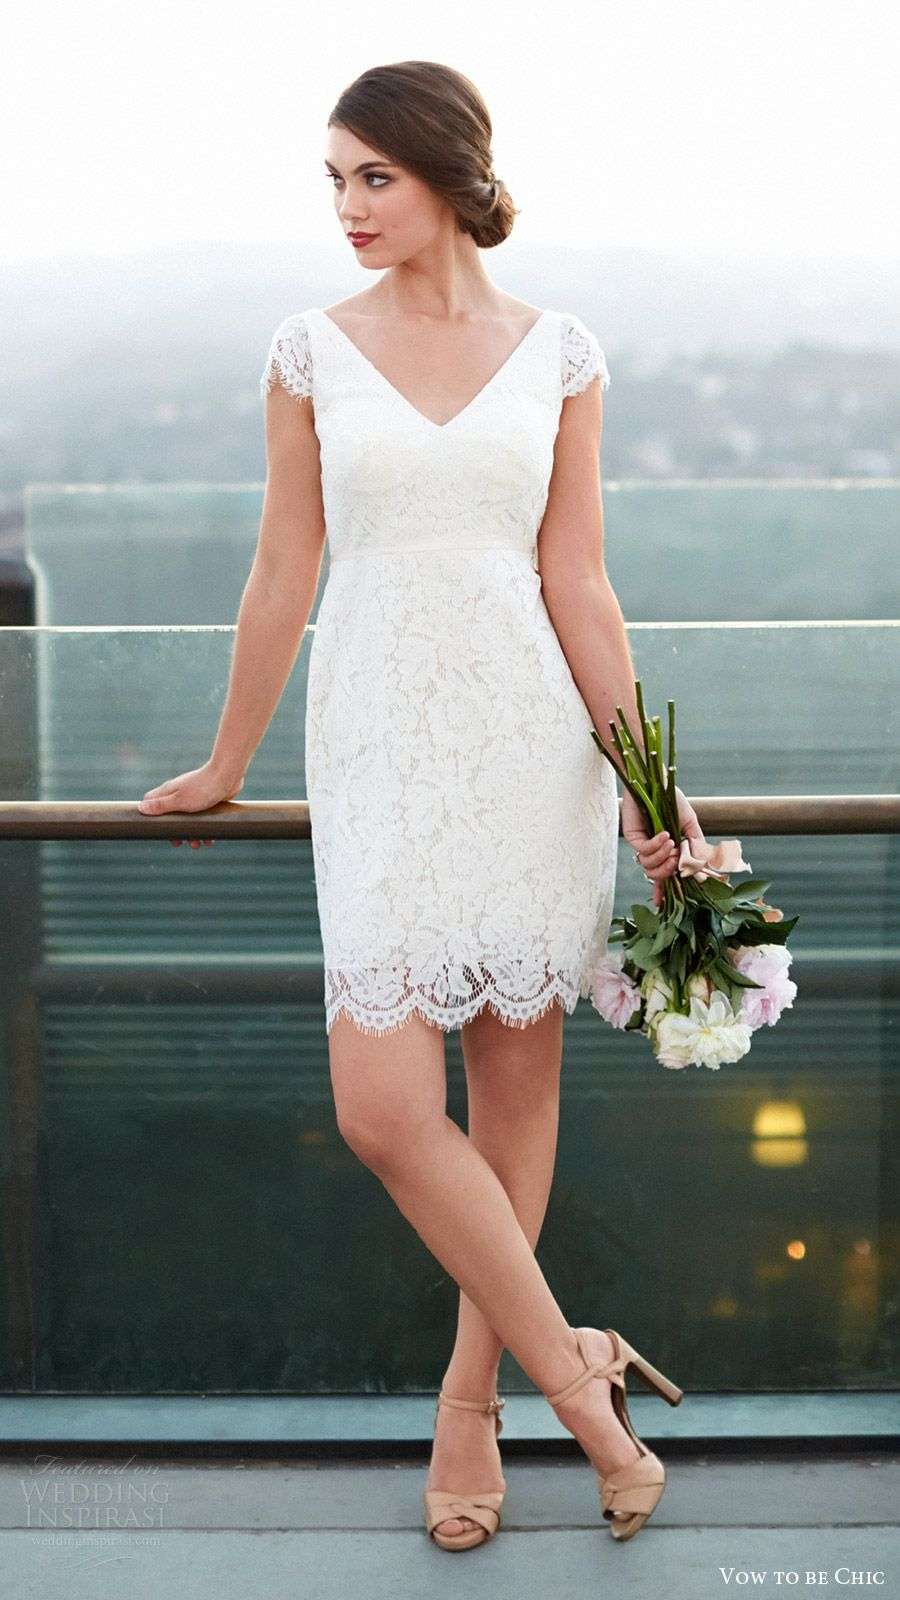 Bridesmaid trend report 2016 featuring vow to be chic designer bridesmaid trend report 2016 featuring vow to be chic designer bridesmaid little white dresses ombrellifo Choice Image